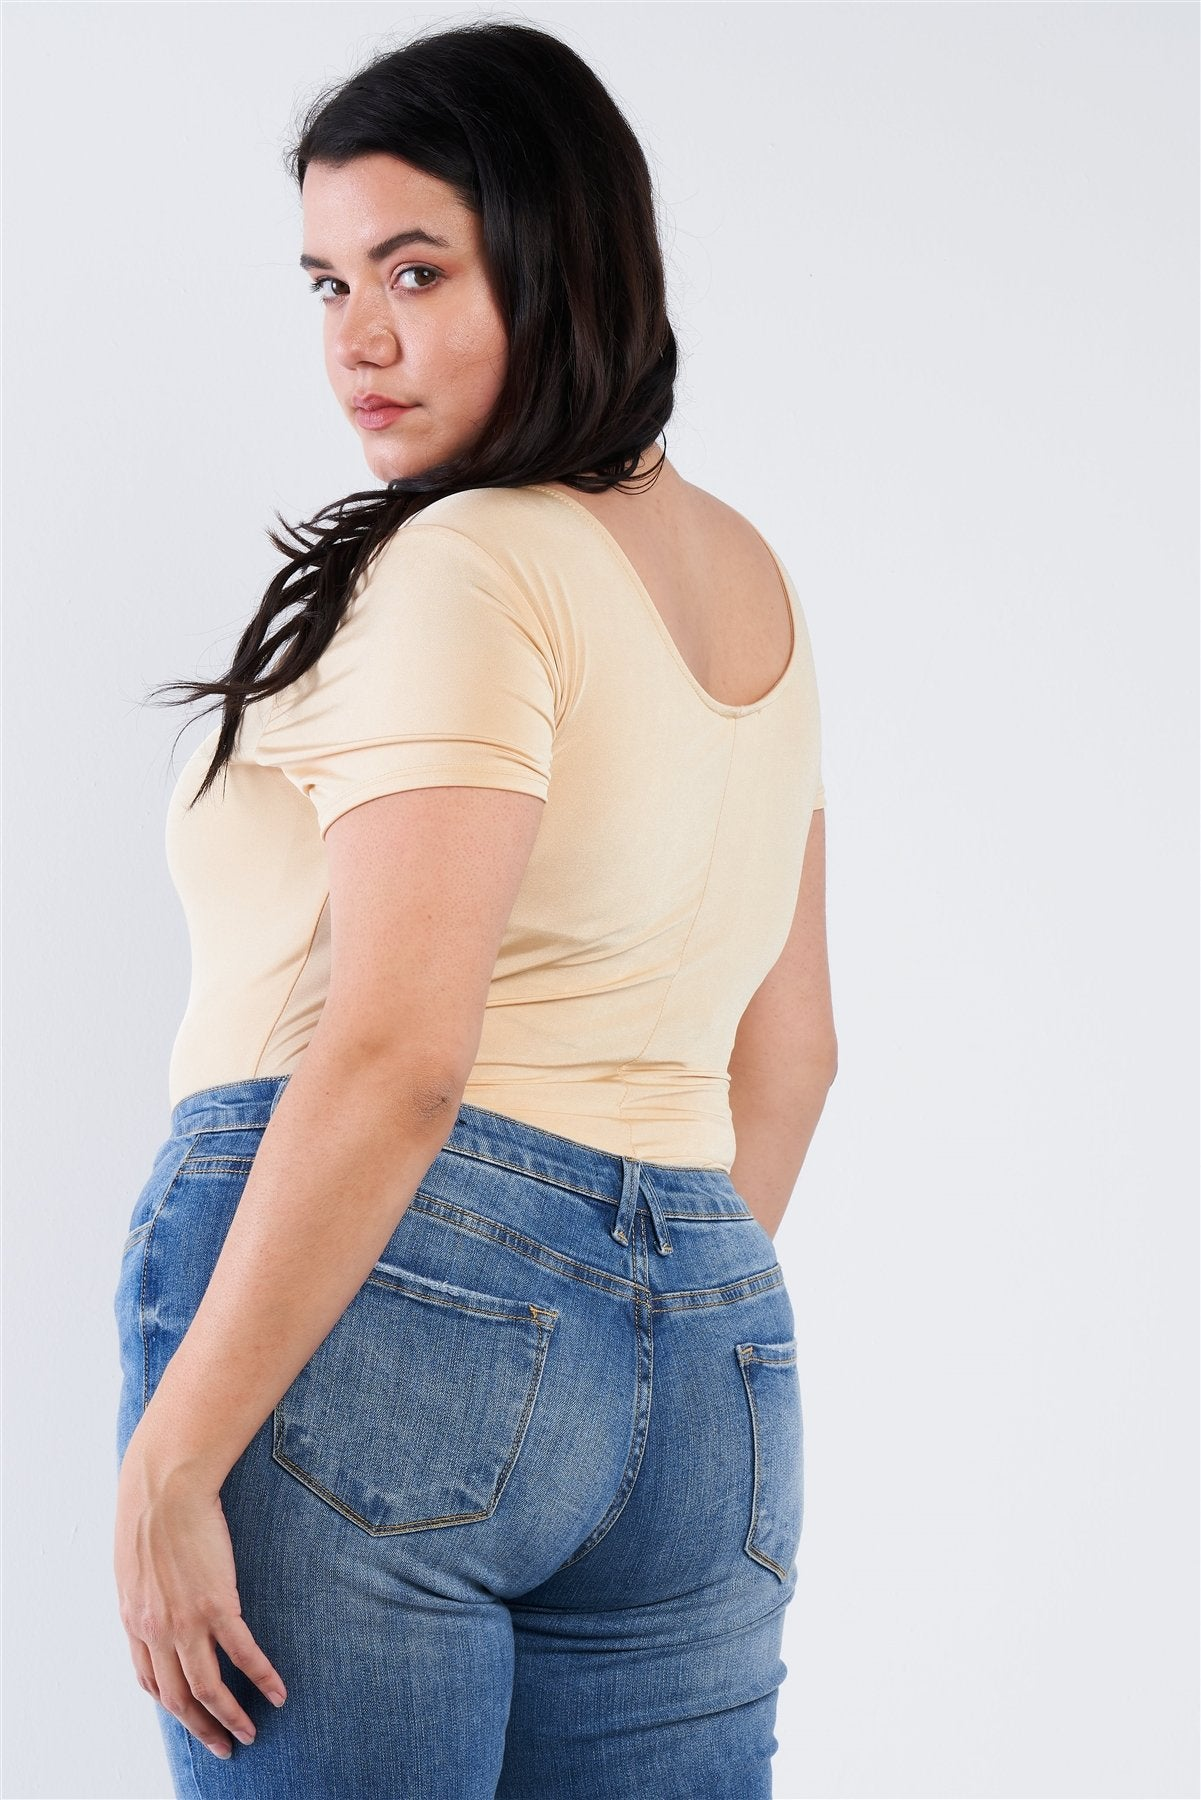 Plus Size Bodysuit - Absolute Fashion 2020